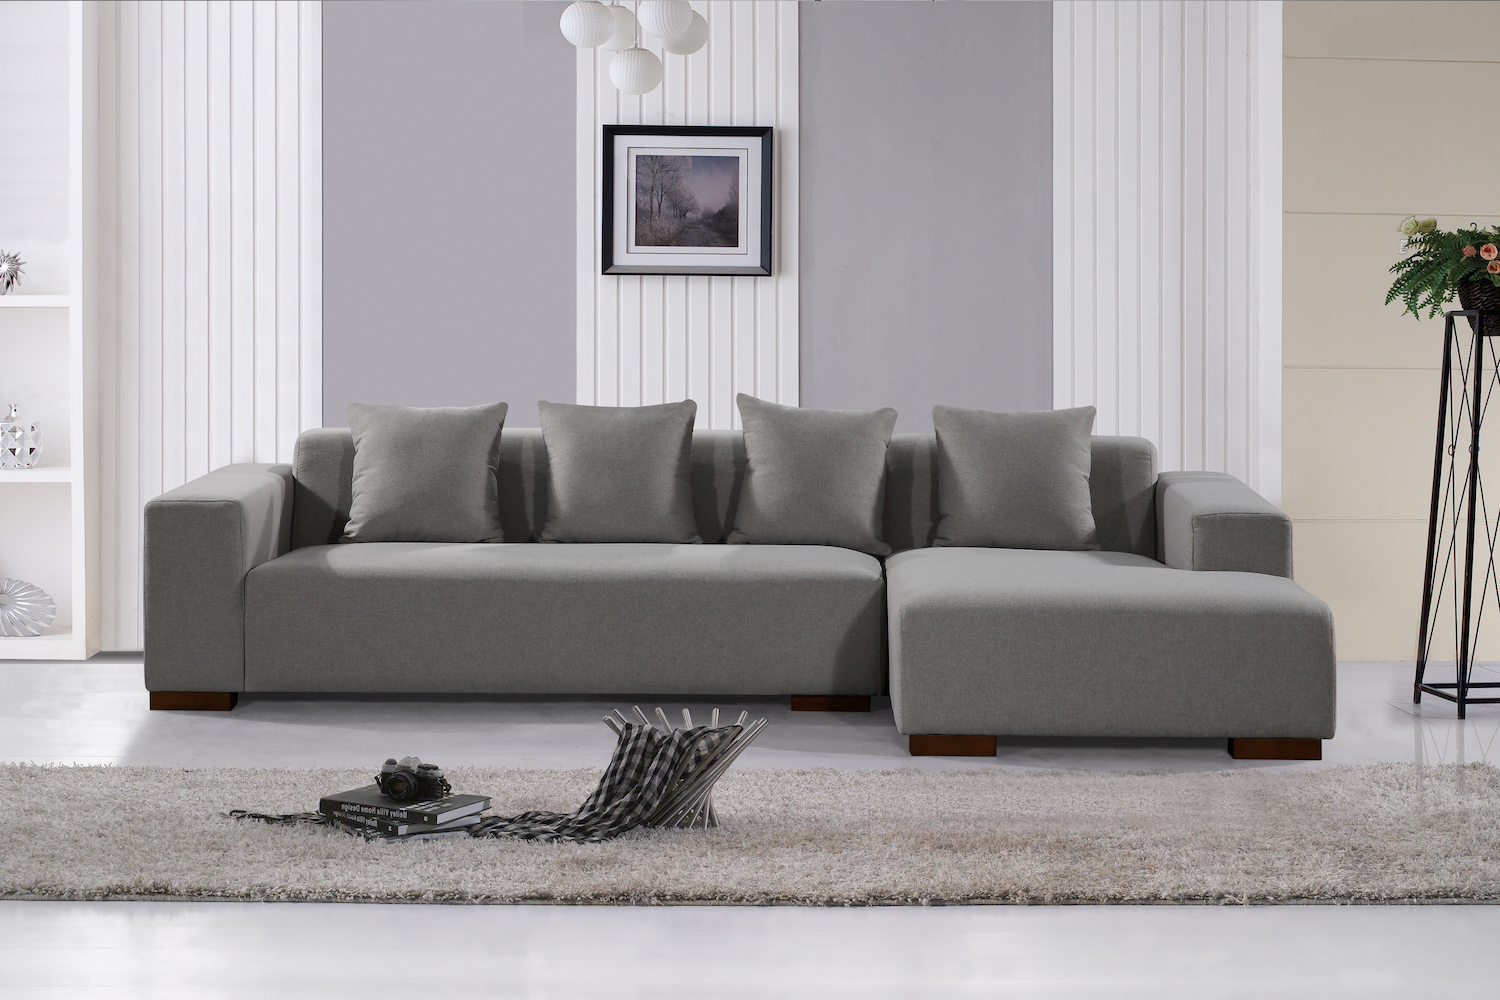 Popular Deep Seating Sectional Sofa – Light Grey Fabric Within Noa Sectional Sofas With Ottoman Gray (View 12 of 20)